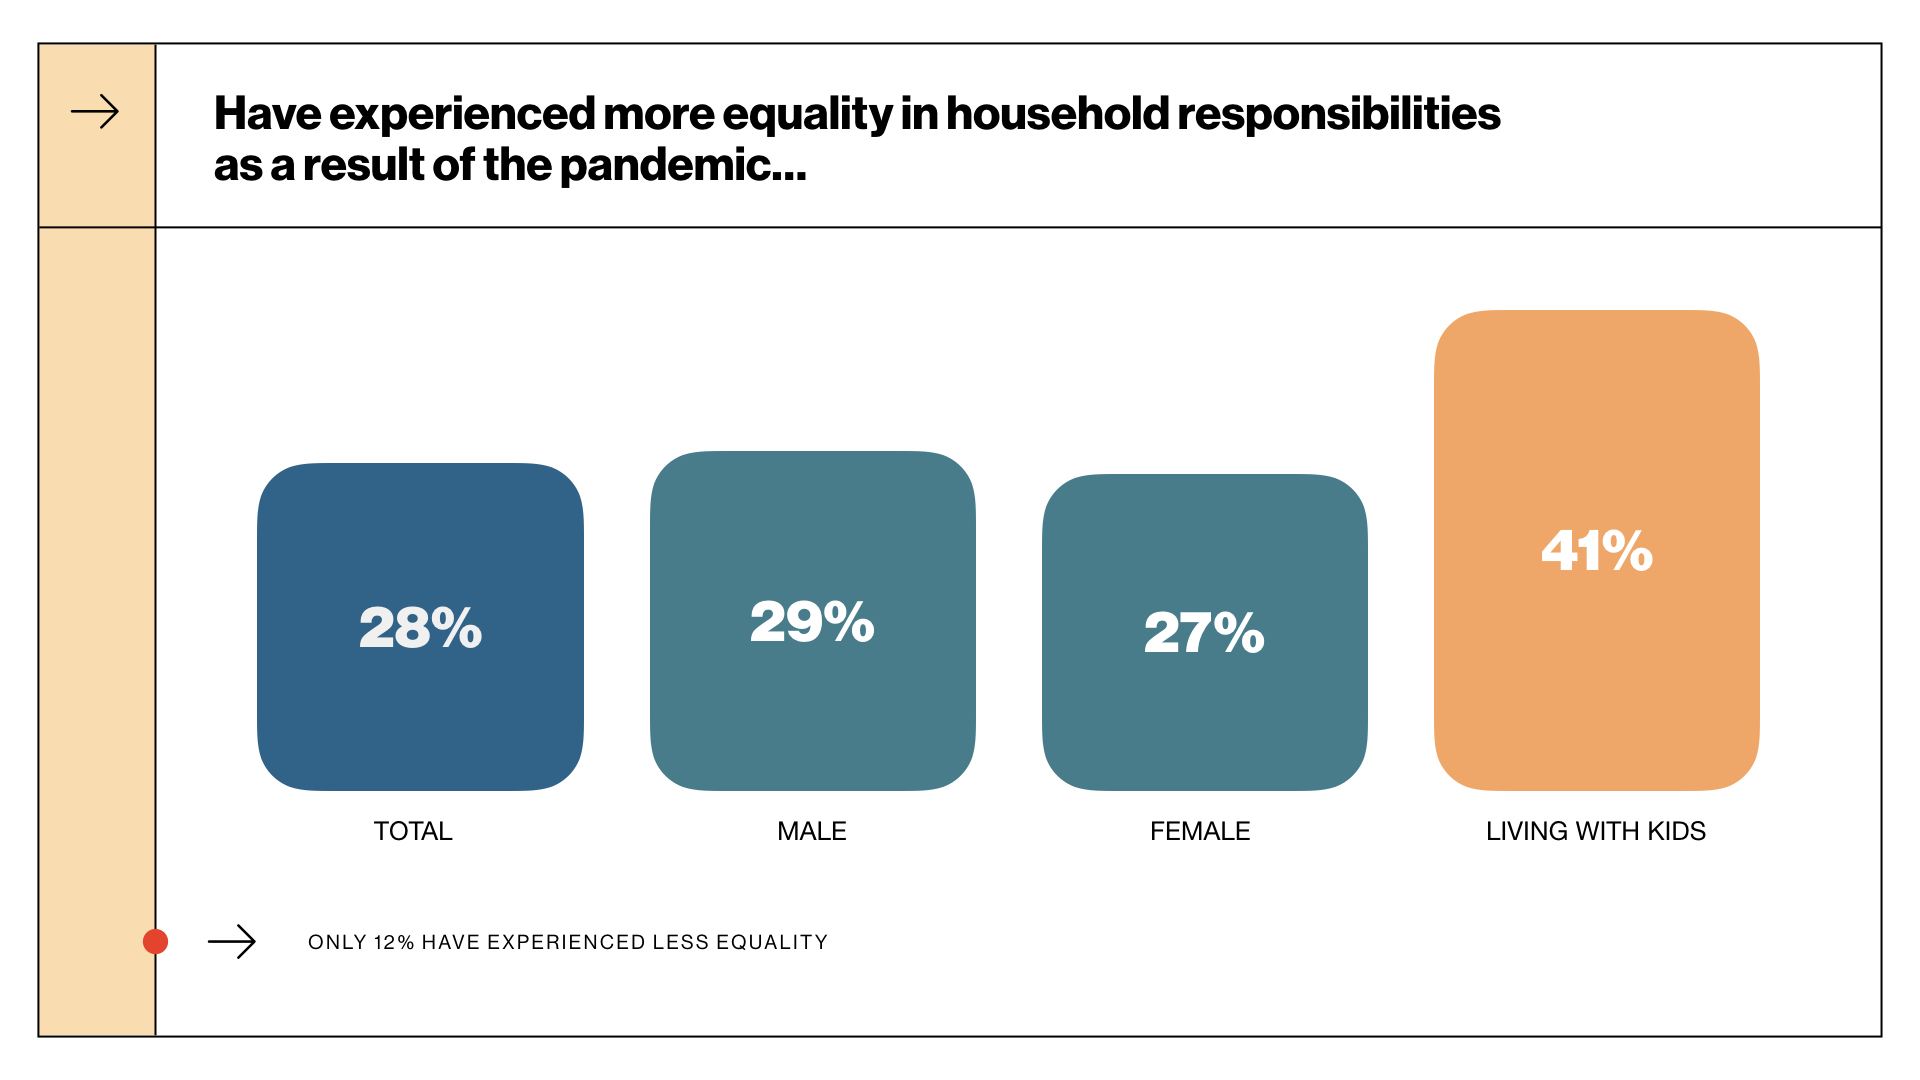 More equality in household responsibilities